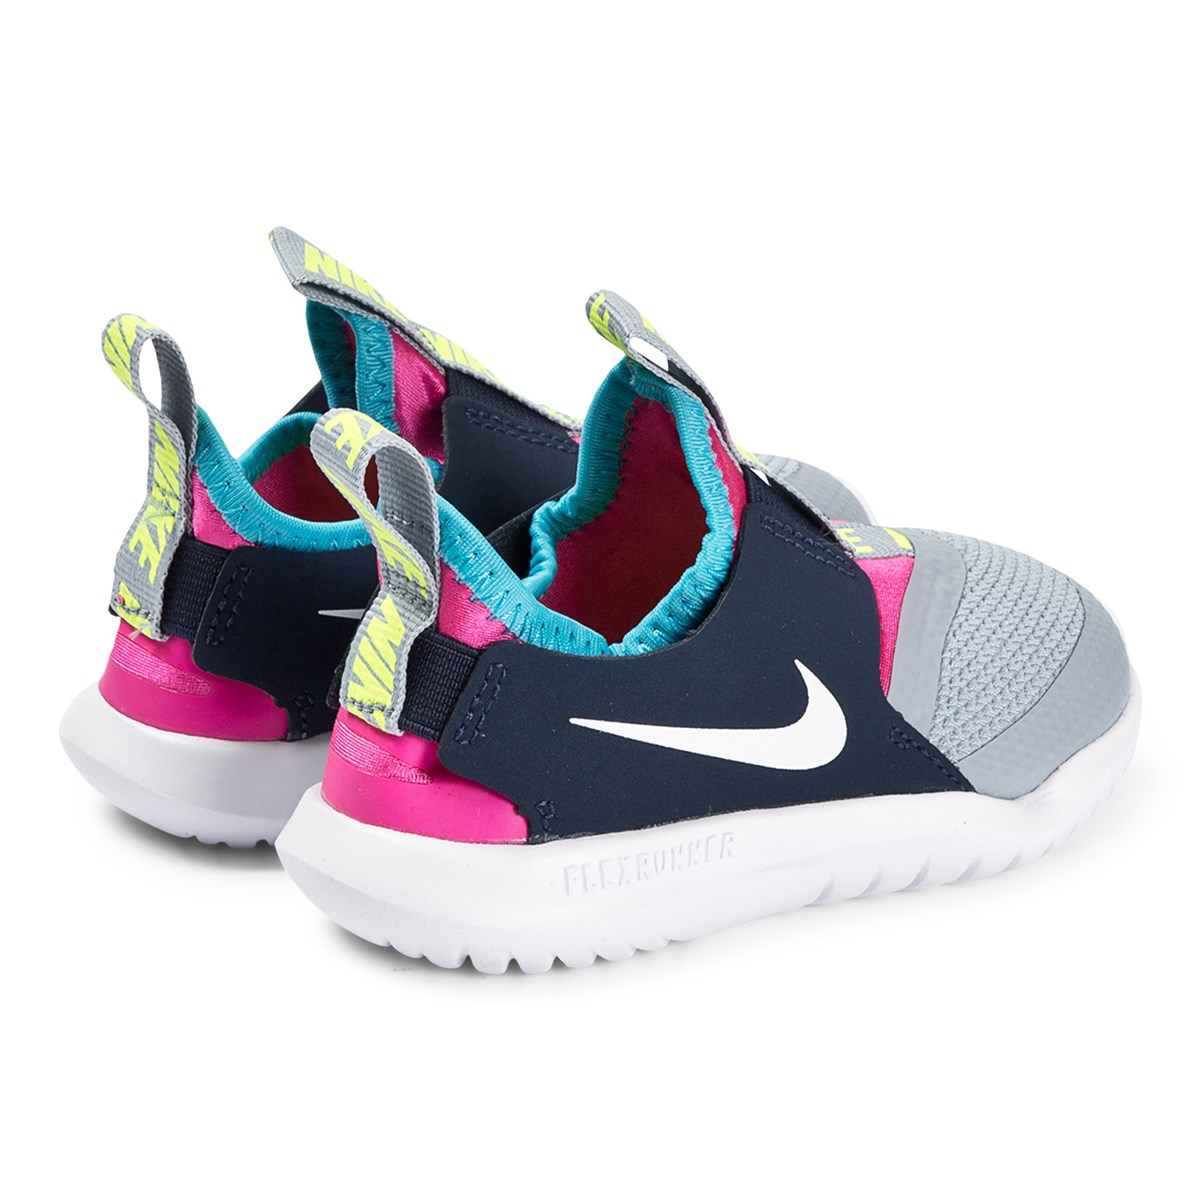 Grey and Pink Nike Flex Runner Trainers